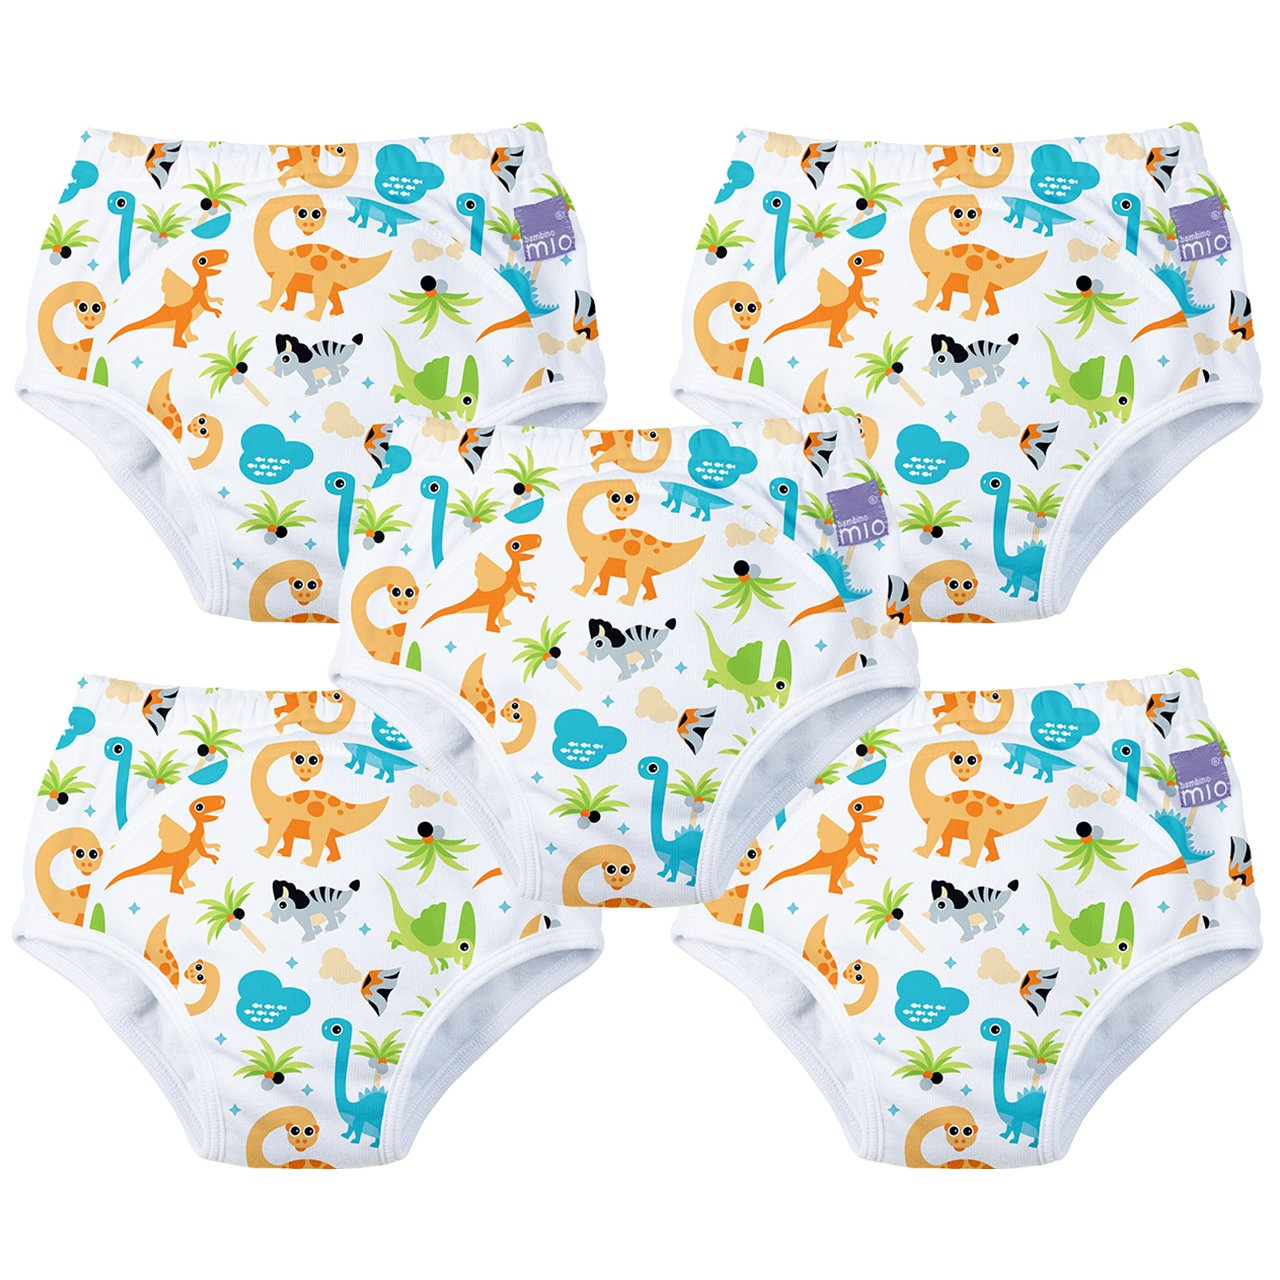 Dino 5 Pack Potty Training Pants 18-24 Months Bambino Mio